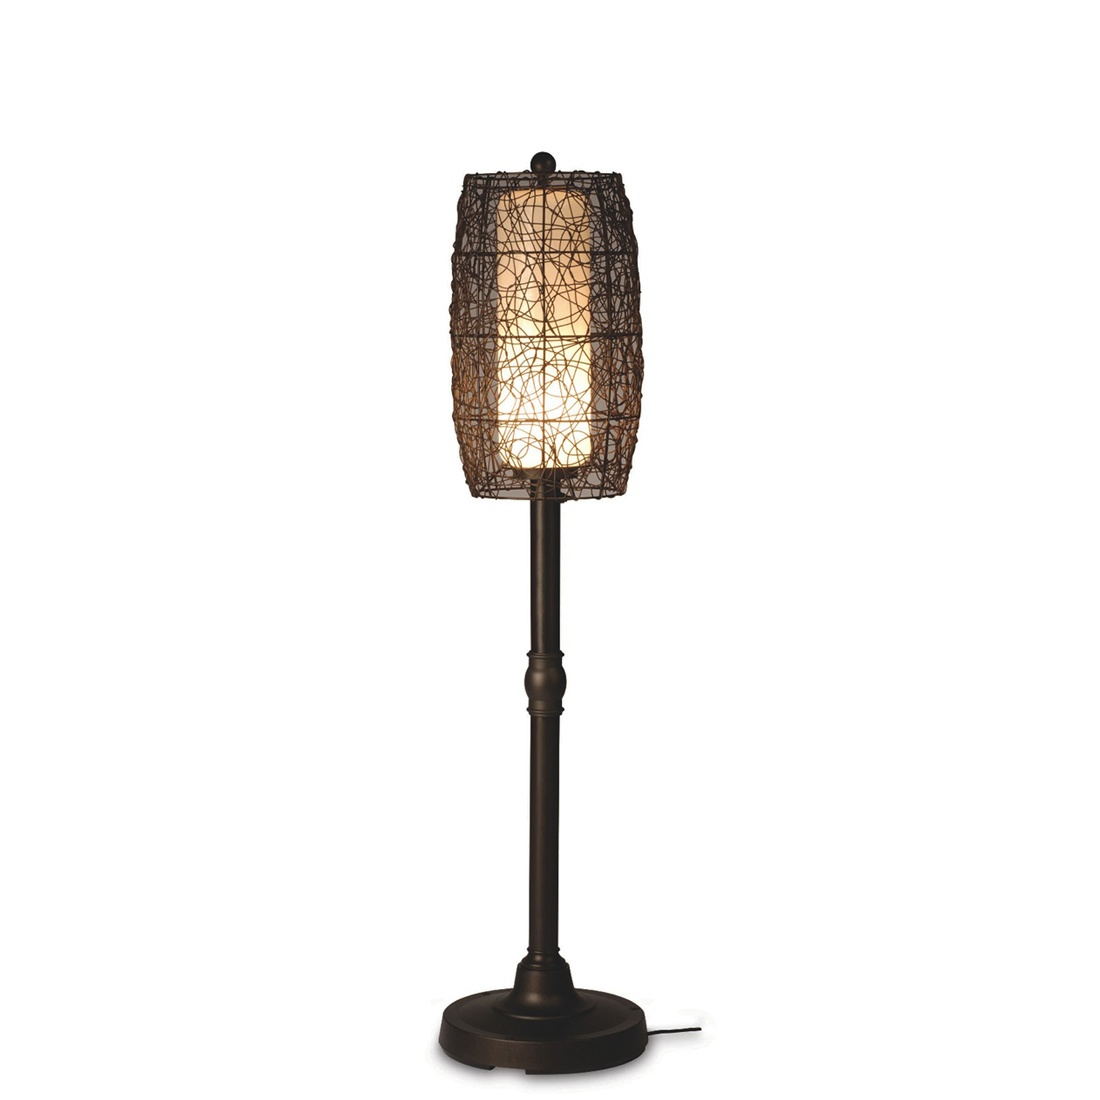 Floor lamps at Casual Creations